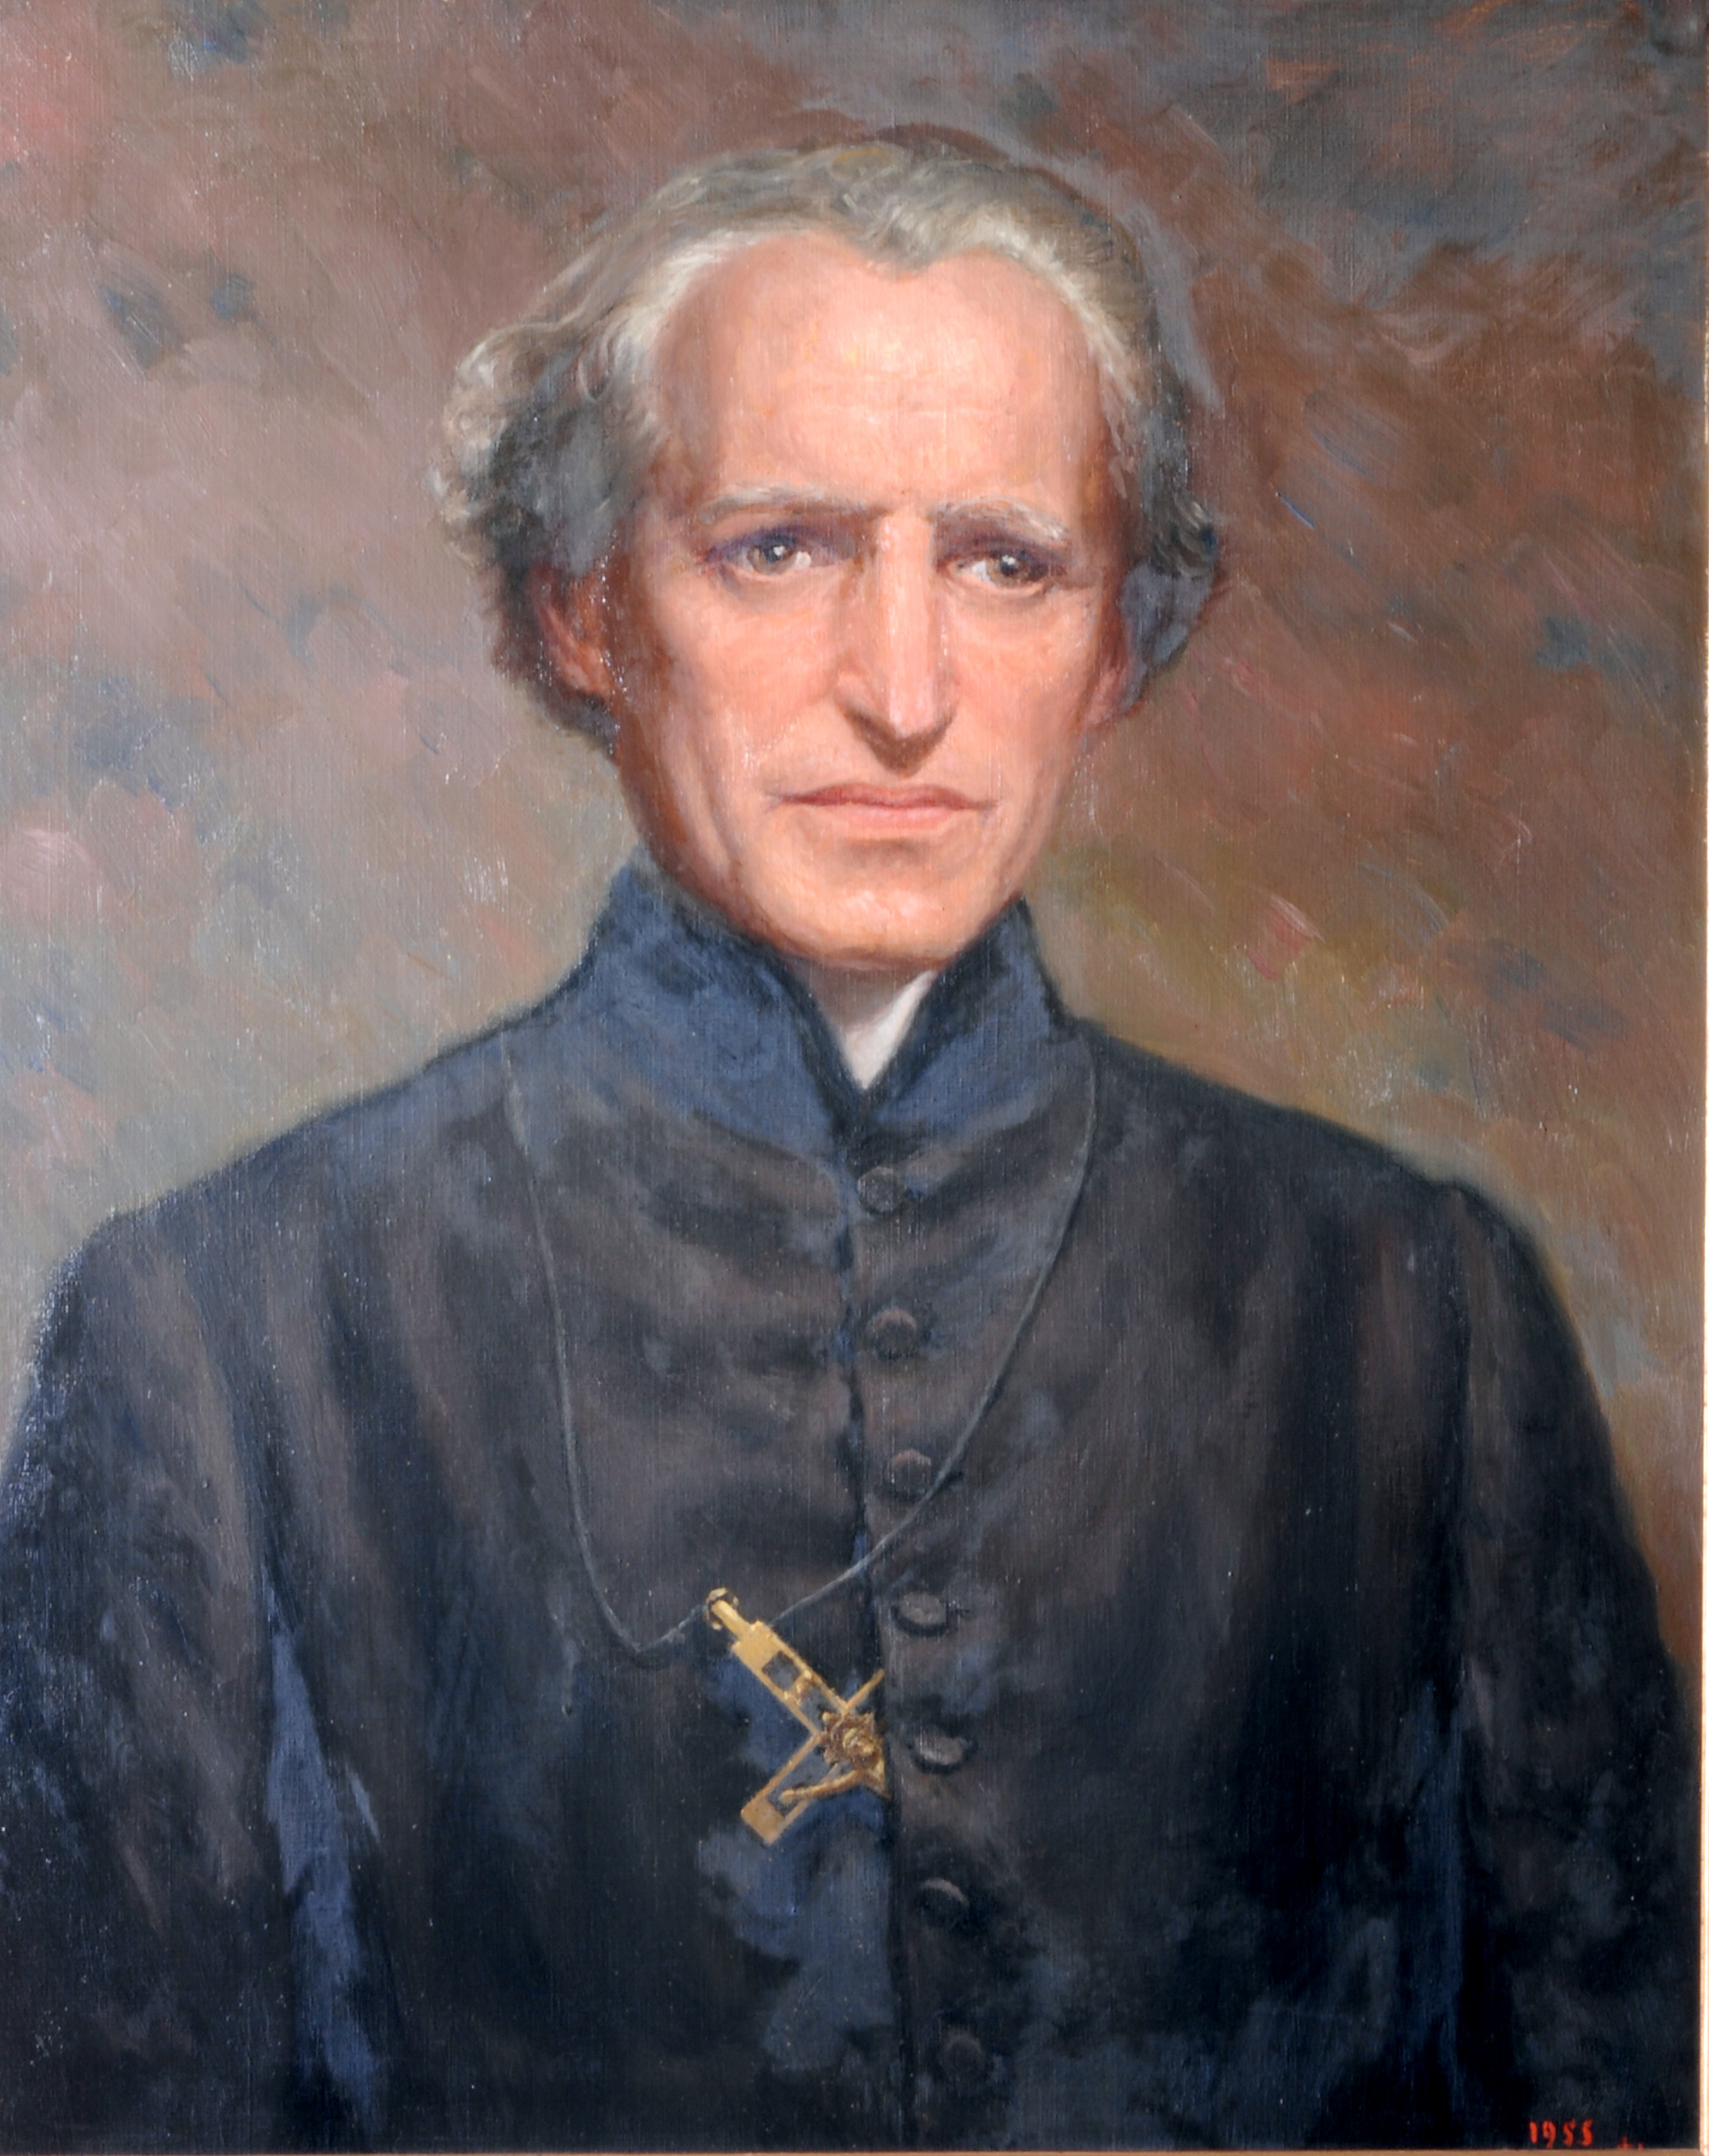 Image of Basil Moreau, C.S.C., founder of the Congregation of Holy Cross - by Congregation of Holy Cross, 6 March 2005 (Official_Moreau_high_density.jpg) (CC BY-SA 3.0 [https://creativecommons.org/licenses/by-sa/3.0/deed.en]), via Wikimedia Commons